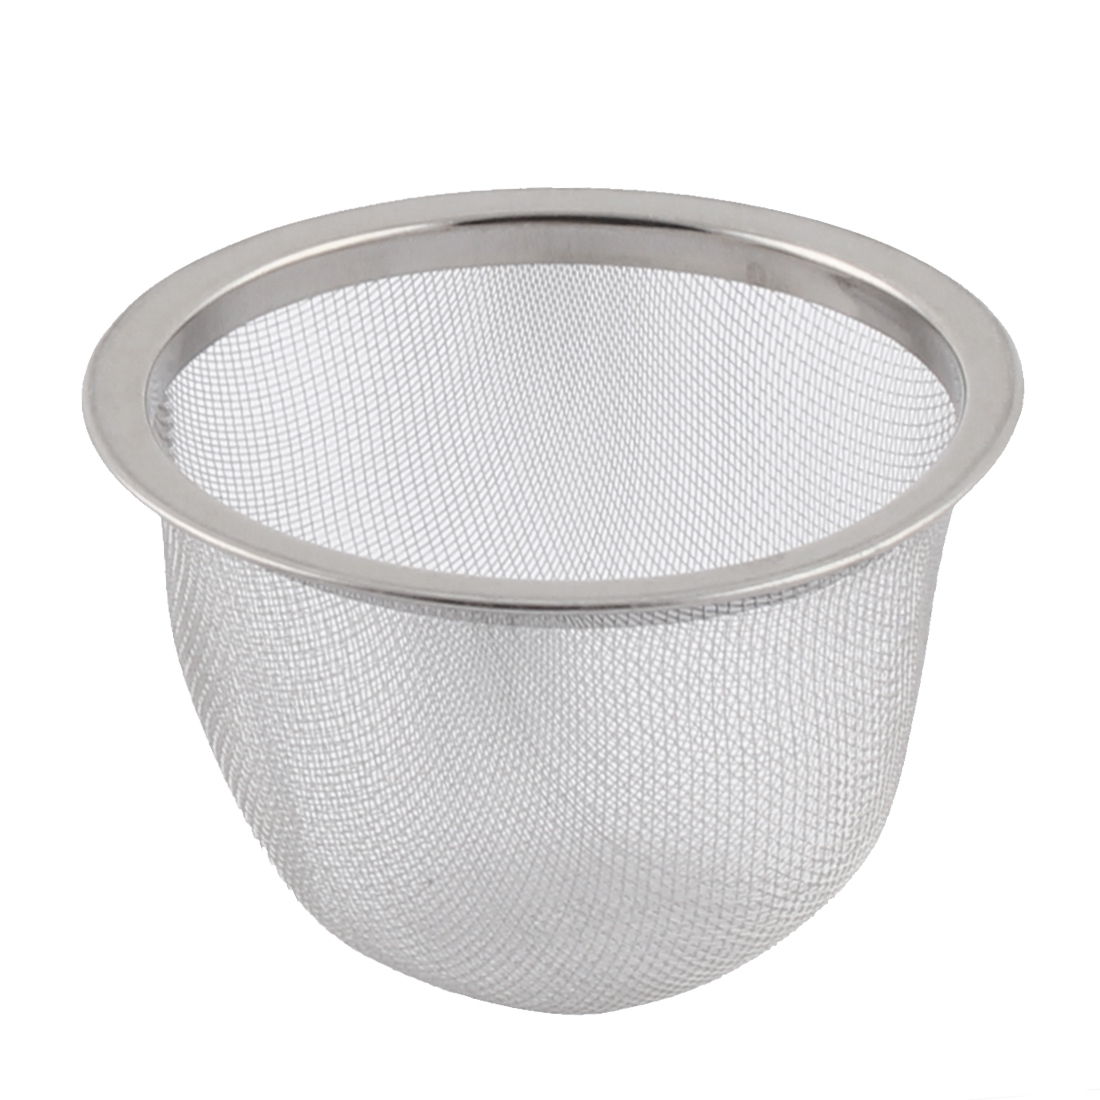 Home Living Room Metal Mesh Perforated Funnel Tea Filter Strainer Infuser Silver Tone